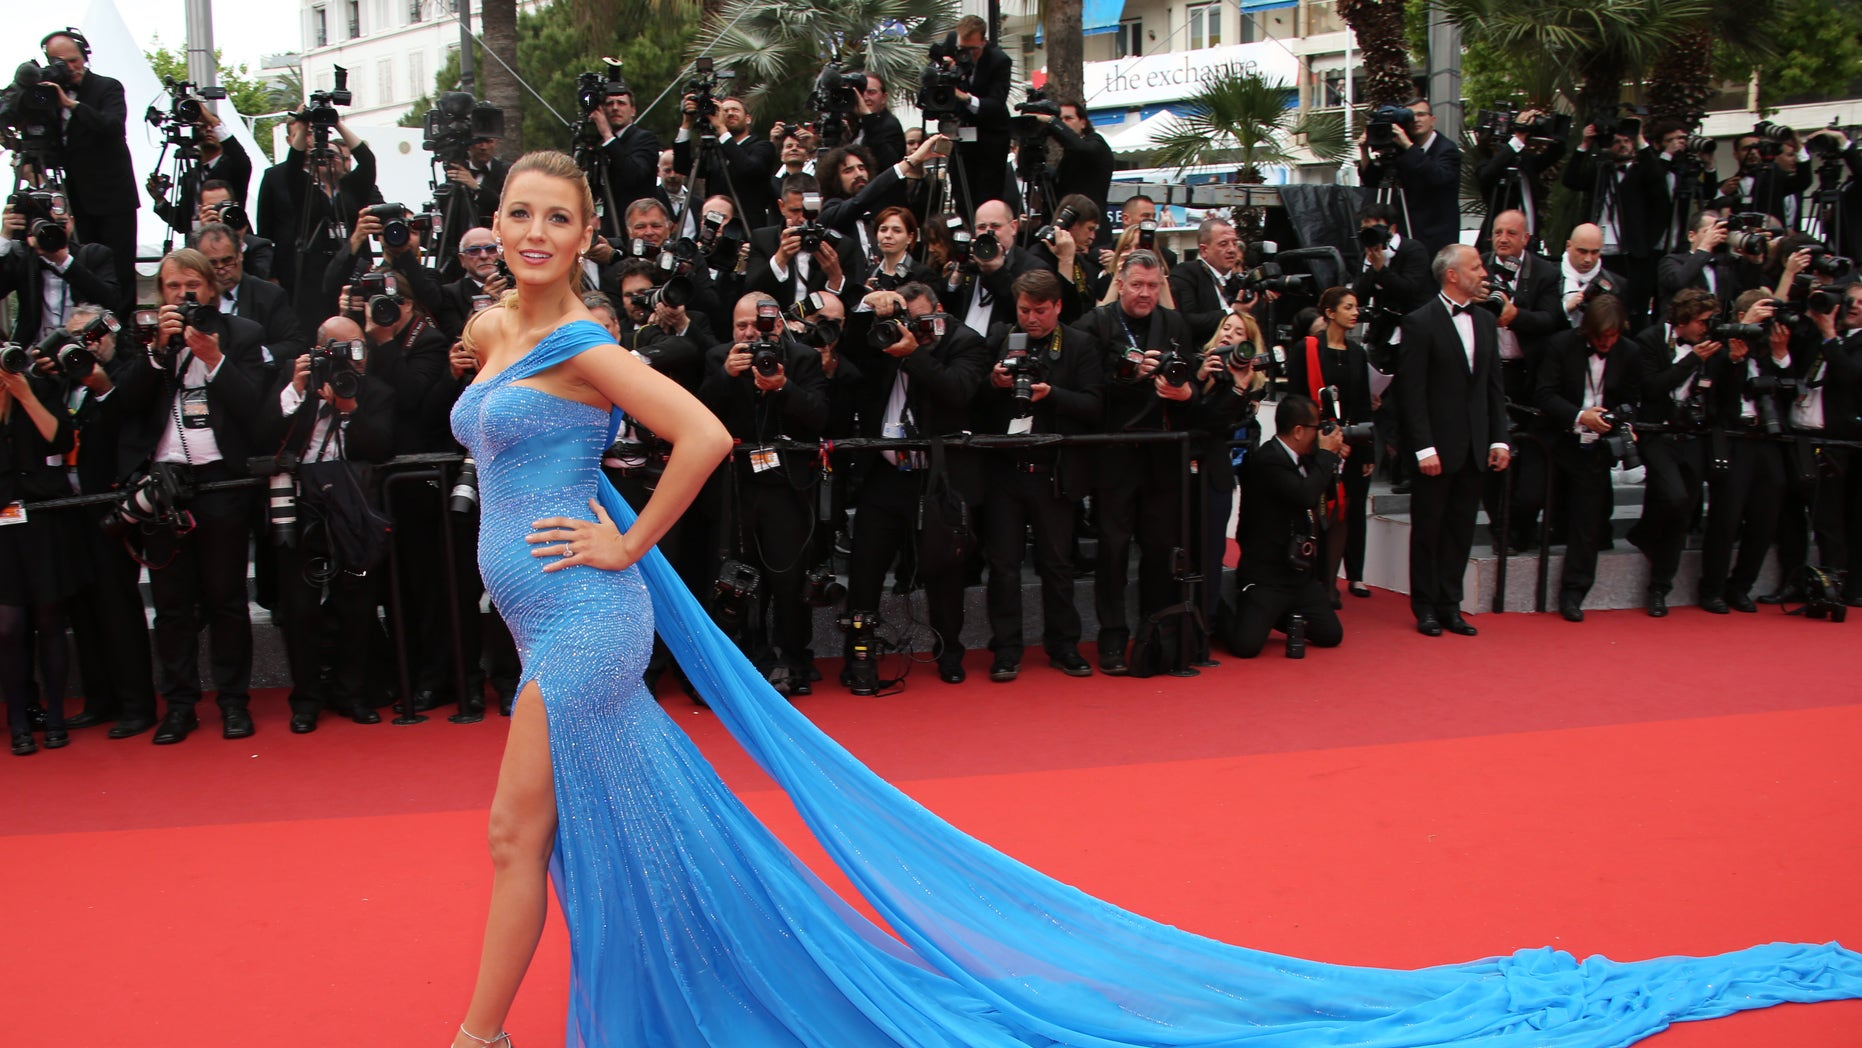 Actress Blake Lively poses for photographers upon arrival at the screening of the film The BFG at the 69th international film festival, Cannes, southern France, Saturday, May 14, 2016. (AP Photo/Joel Ryan)